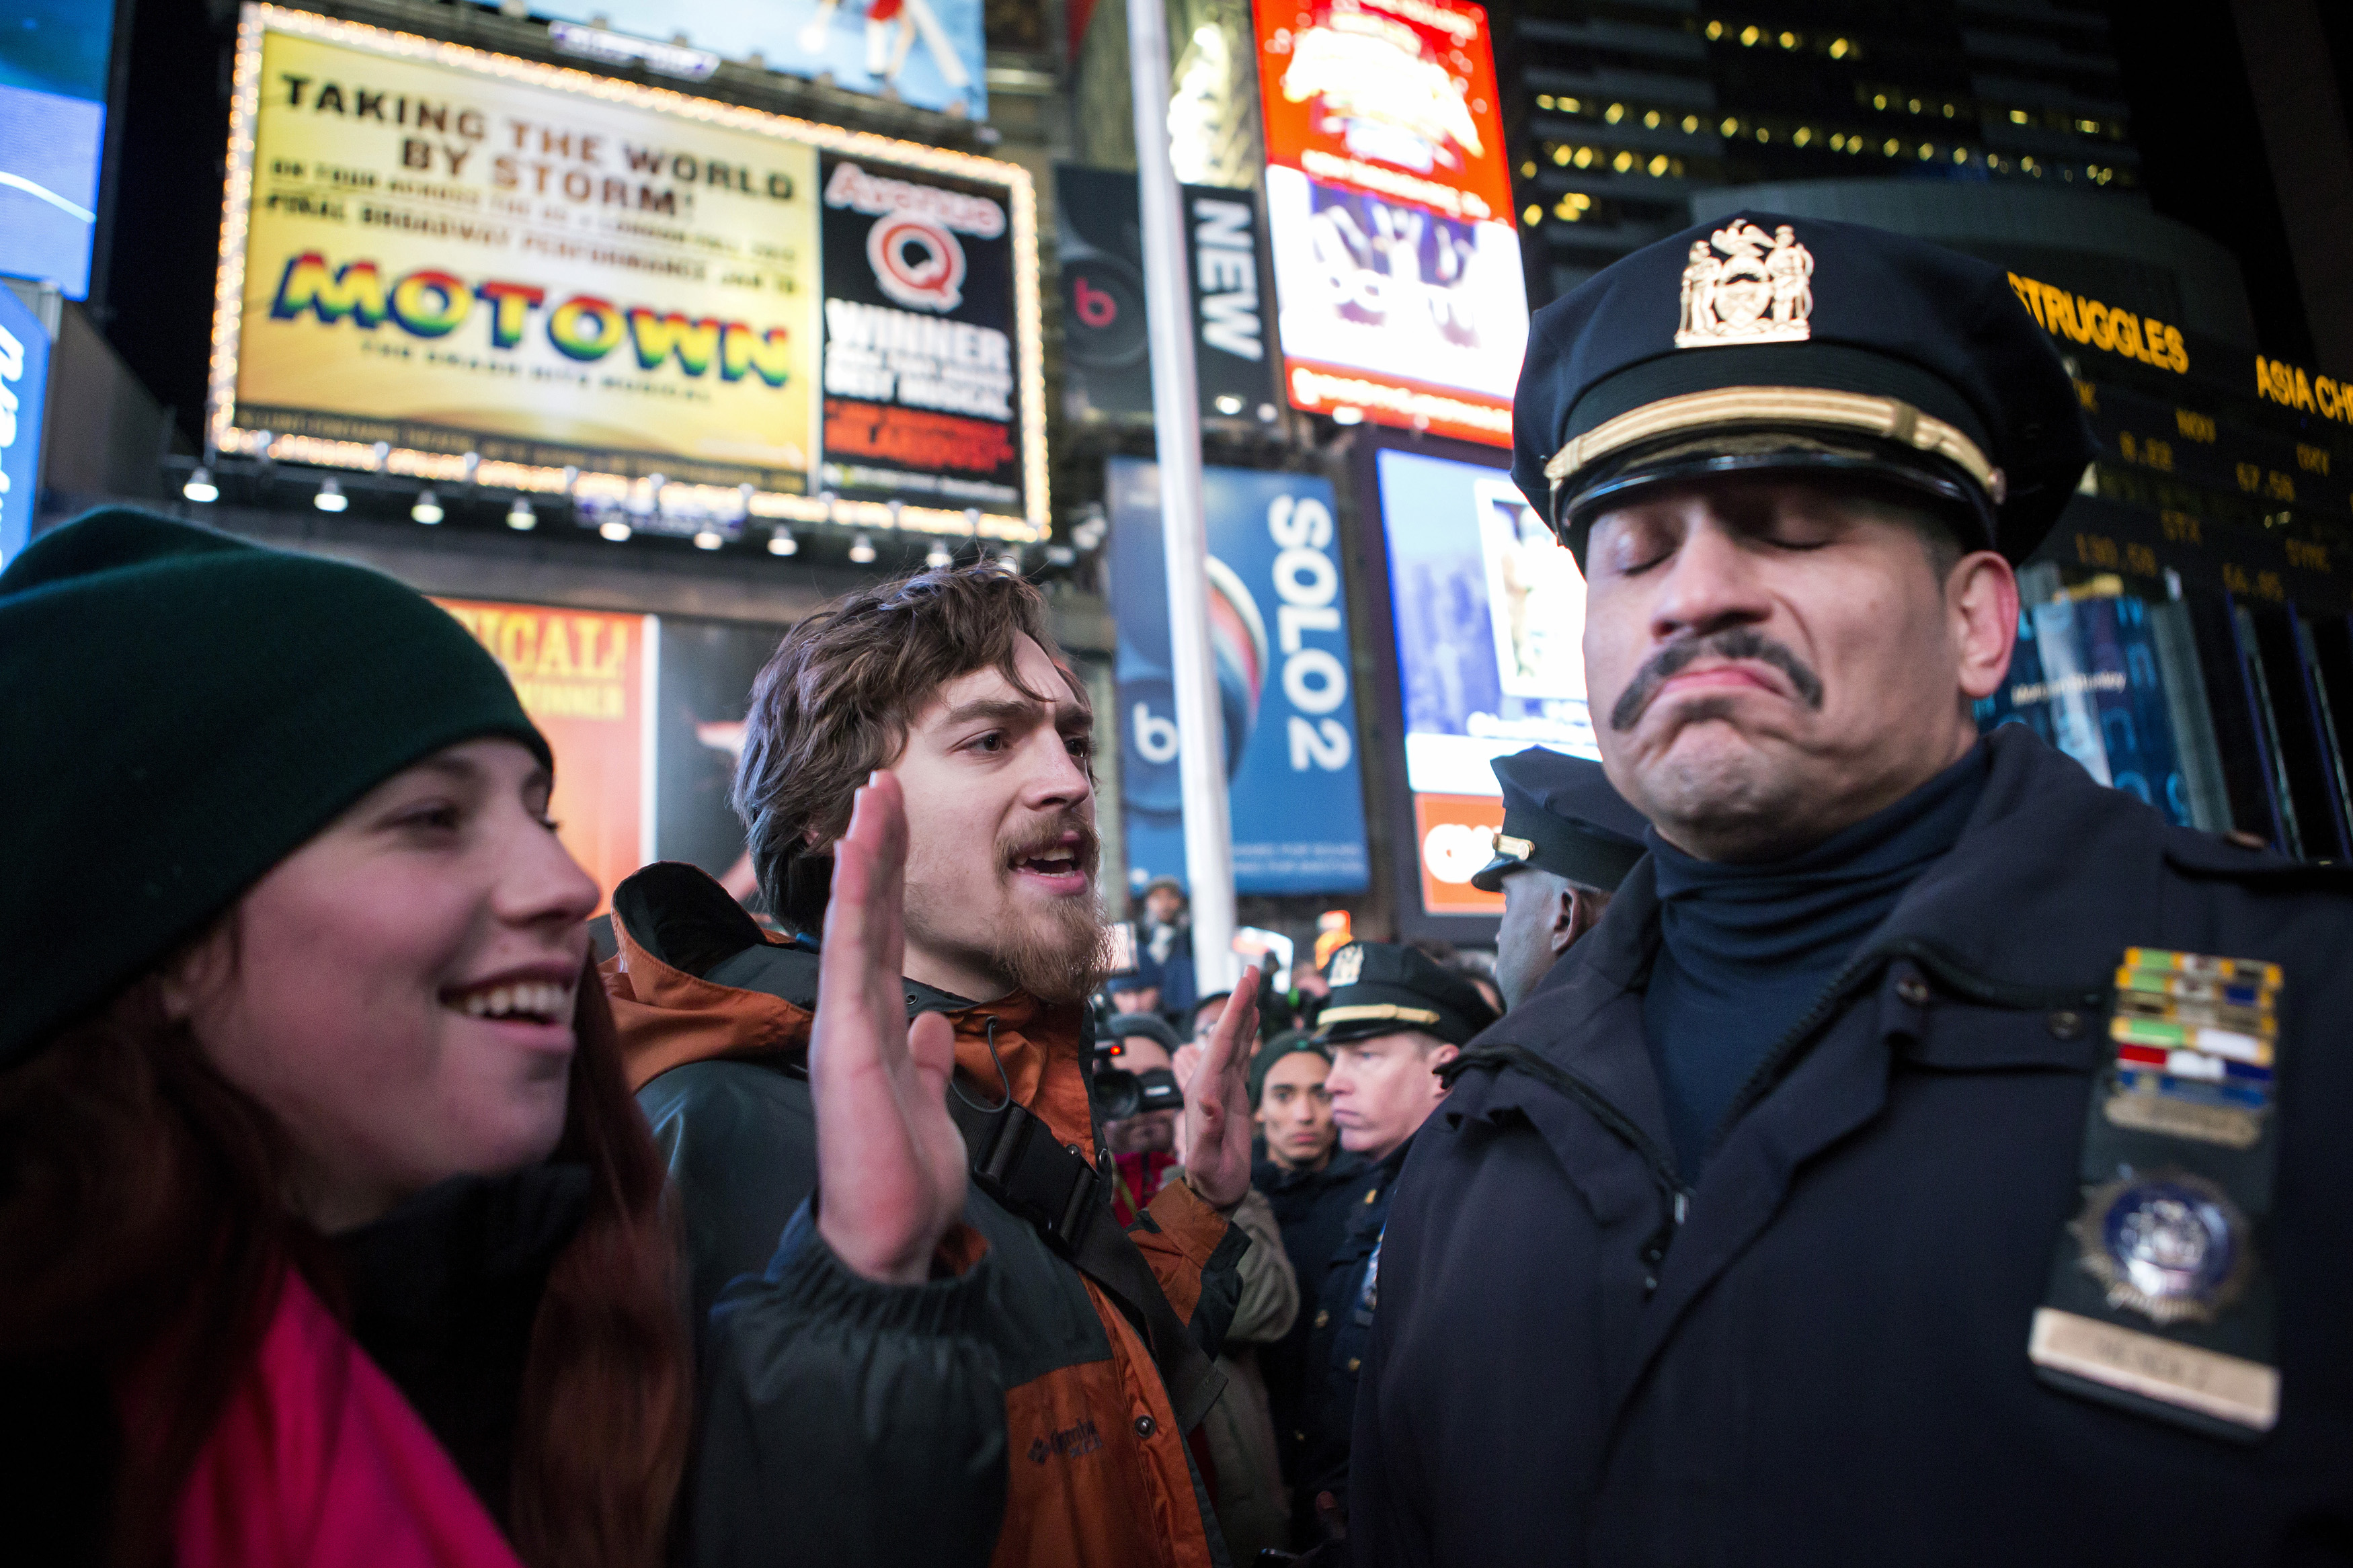 A New York City police officer reacts next to people protesting against the death of Eric Garner during an arrest in July.